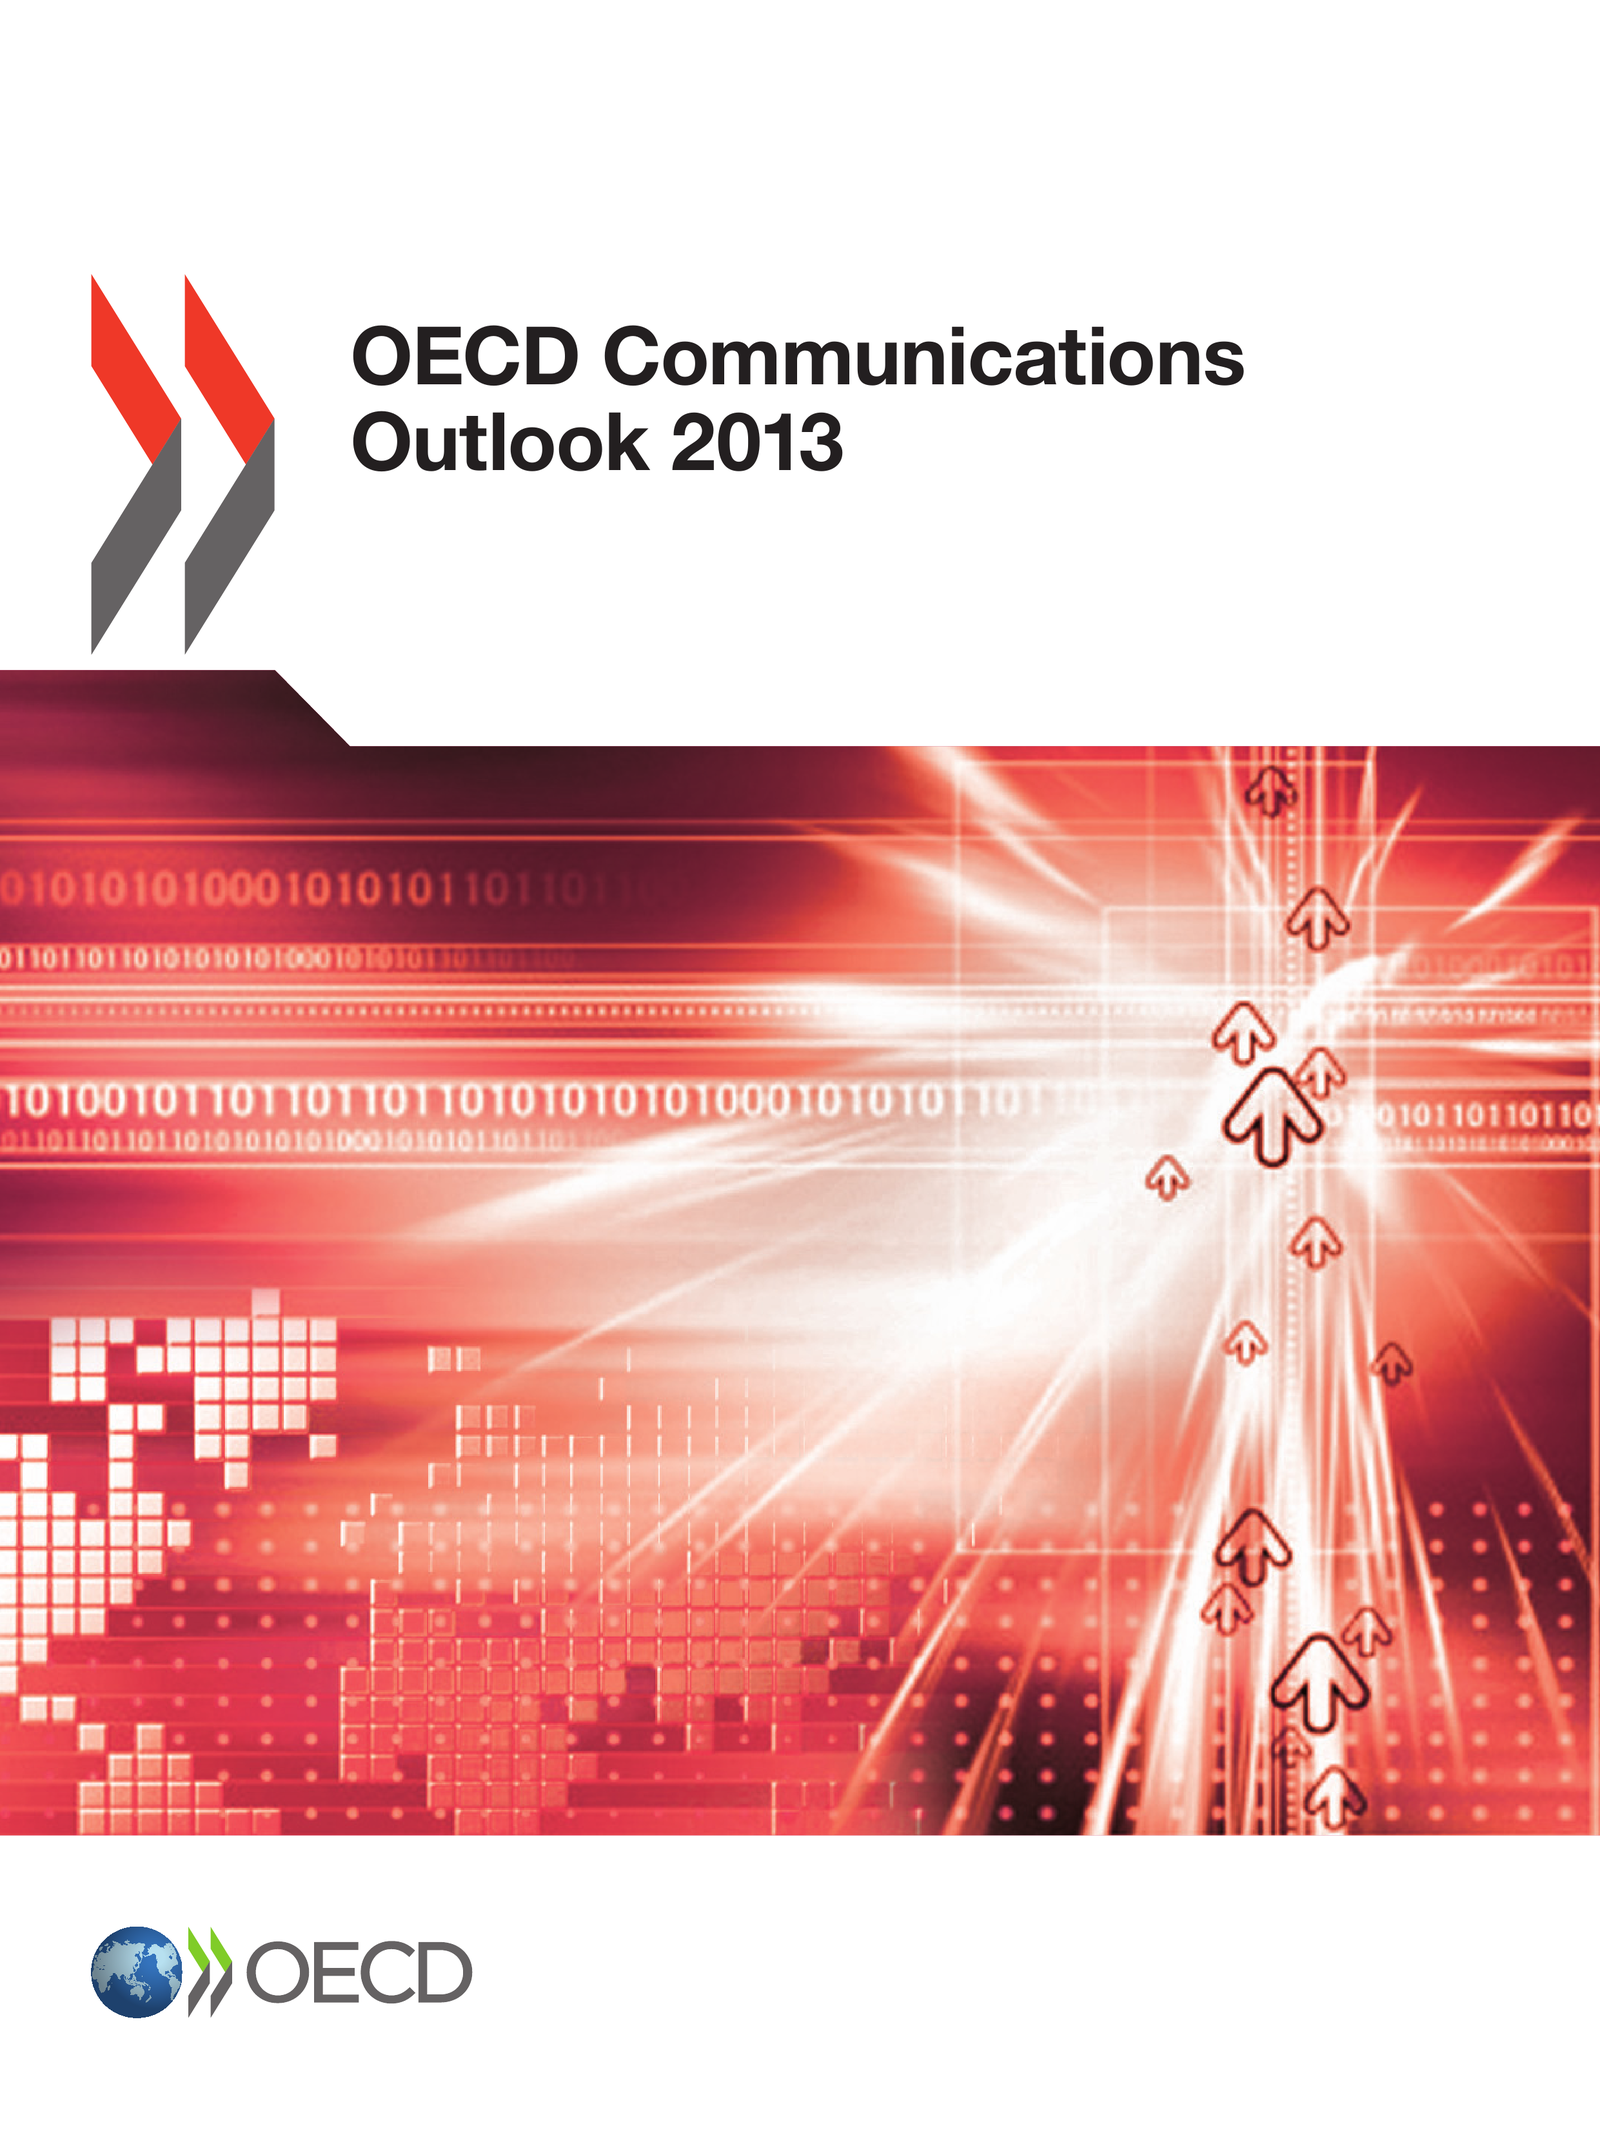 OECD Communications Outlook 2013